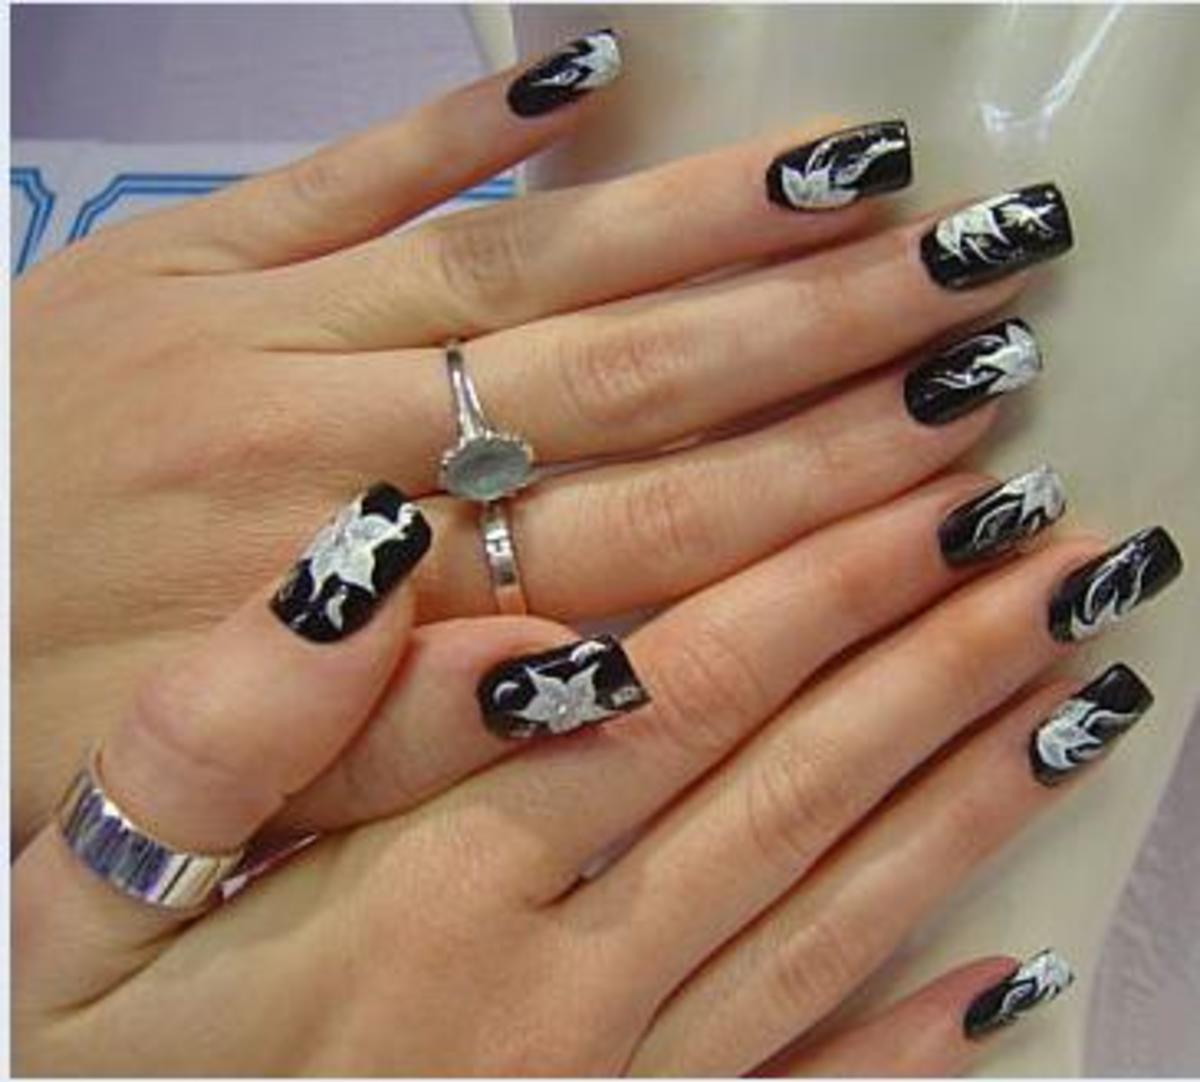 Get some ideas for decorating your nails at home, from glitter to stripes.